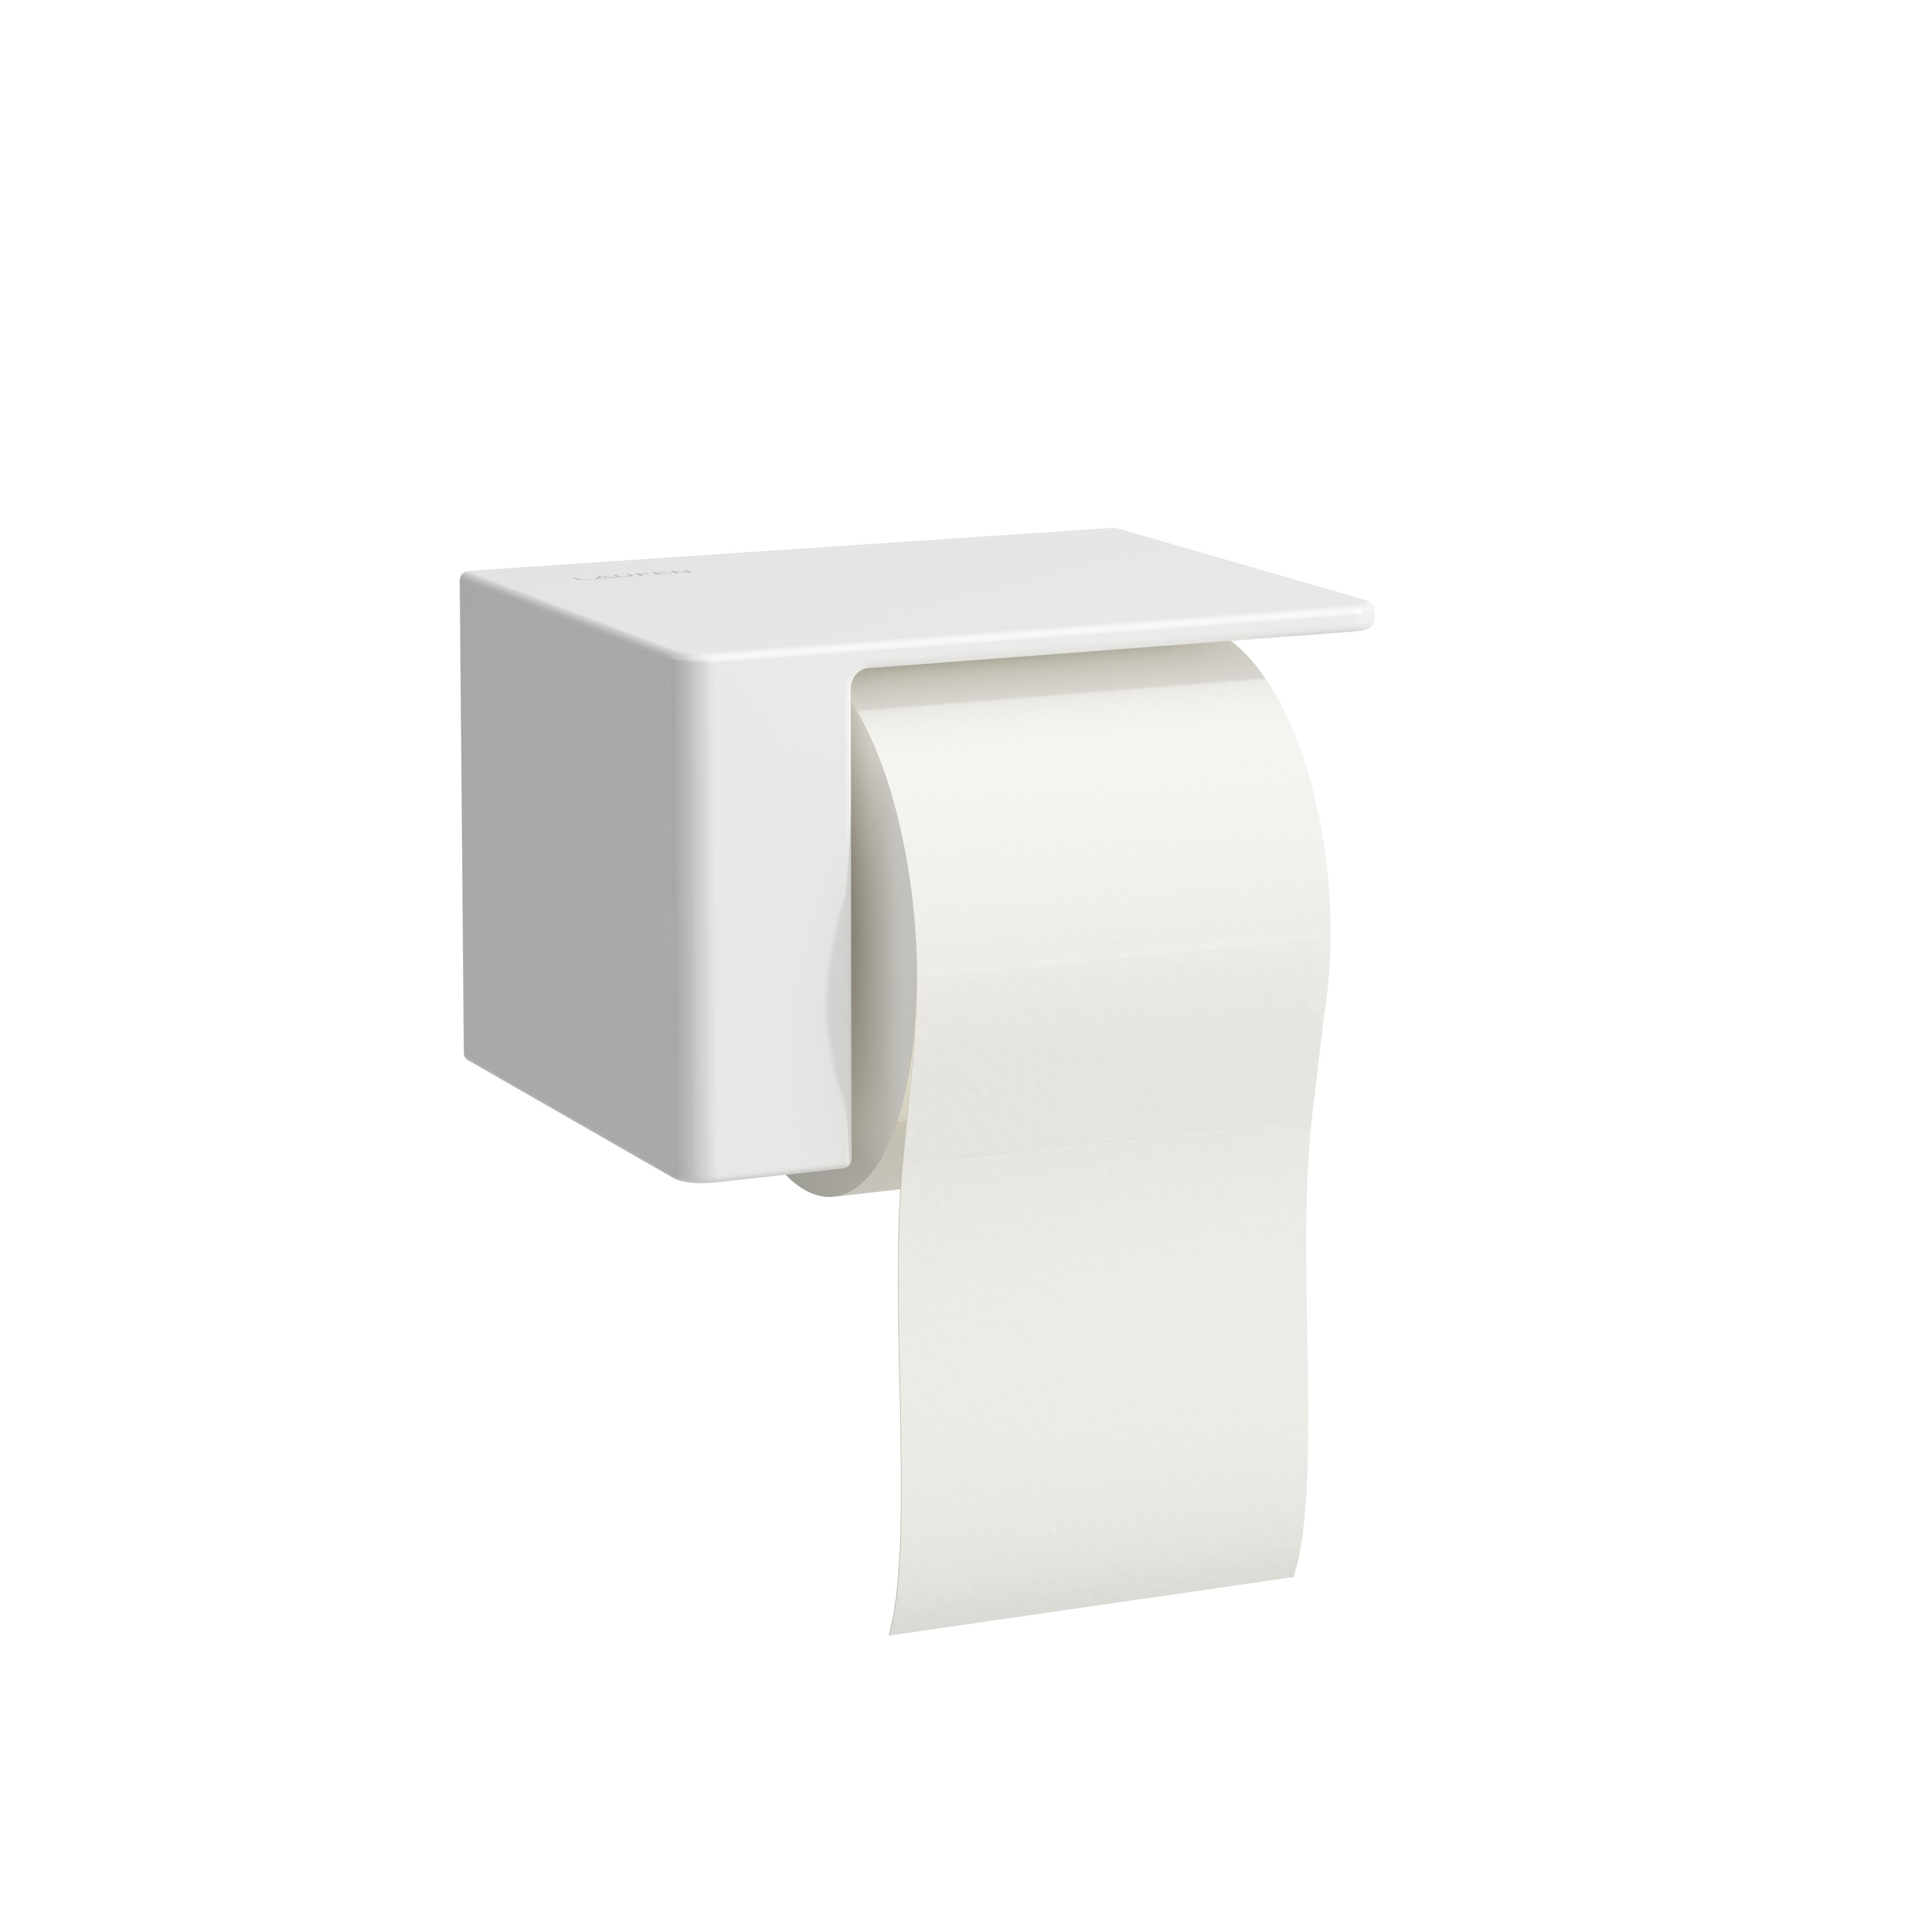 click on Toilet roll holder - Right image to enlarge